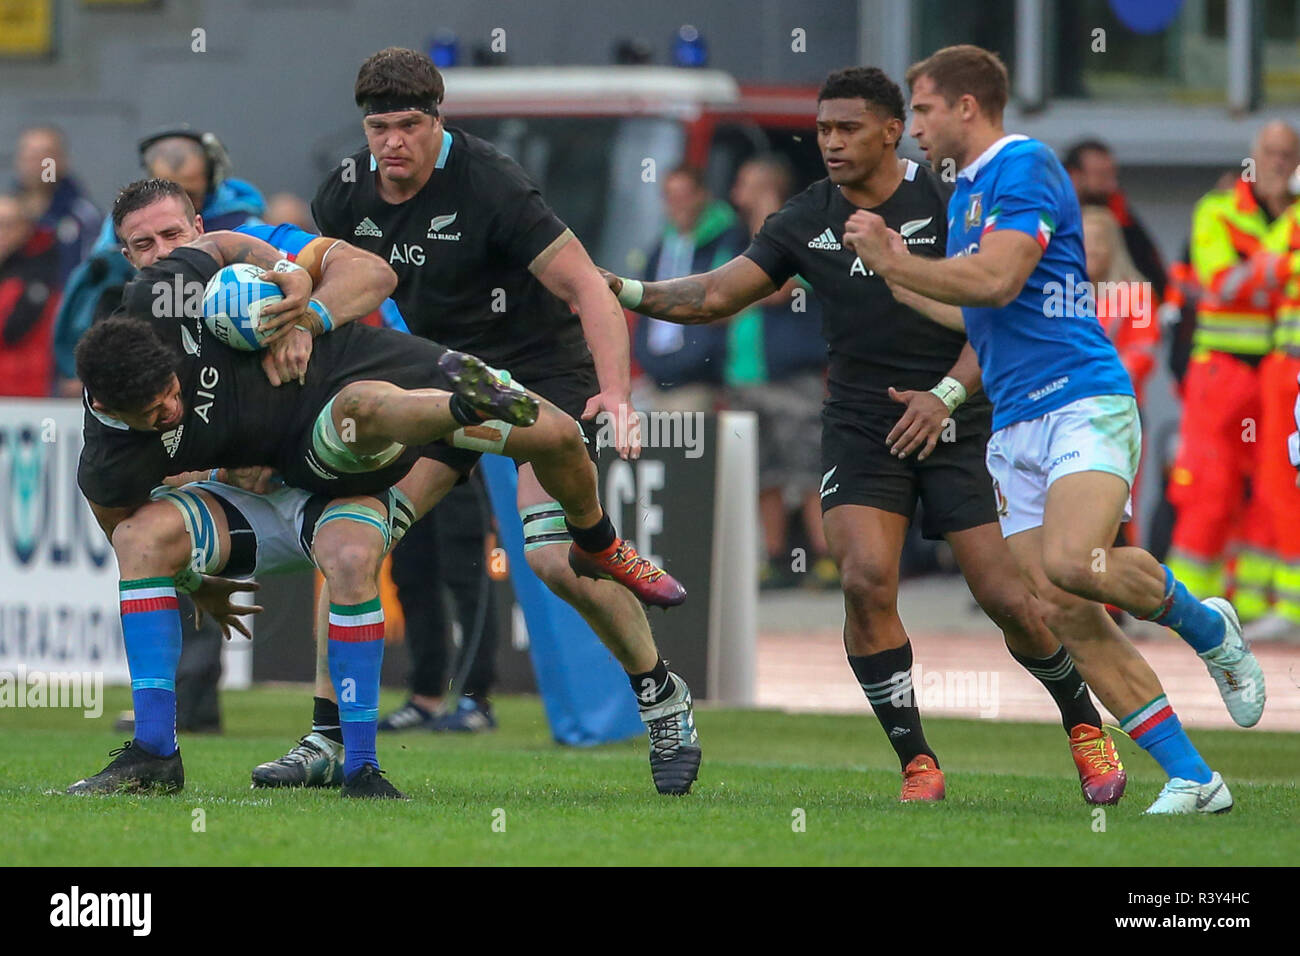 Stadio Olimpico, Rome, Italy. 24th Nov, 2018. Autumn International rugby, Italy versus New Zealand; Ardie Savea of New Zealand and Abraham Steyn of Italy fight for the ball Credit: Action Plus Sports/Alamy Live News - Stock Image